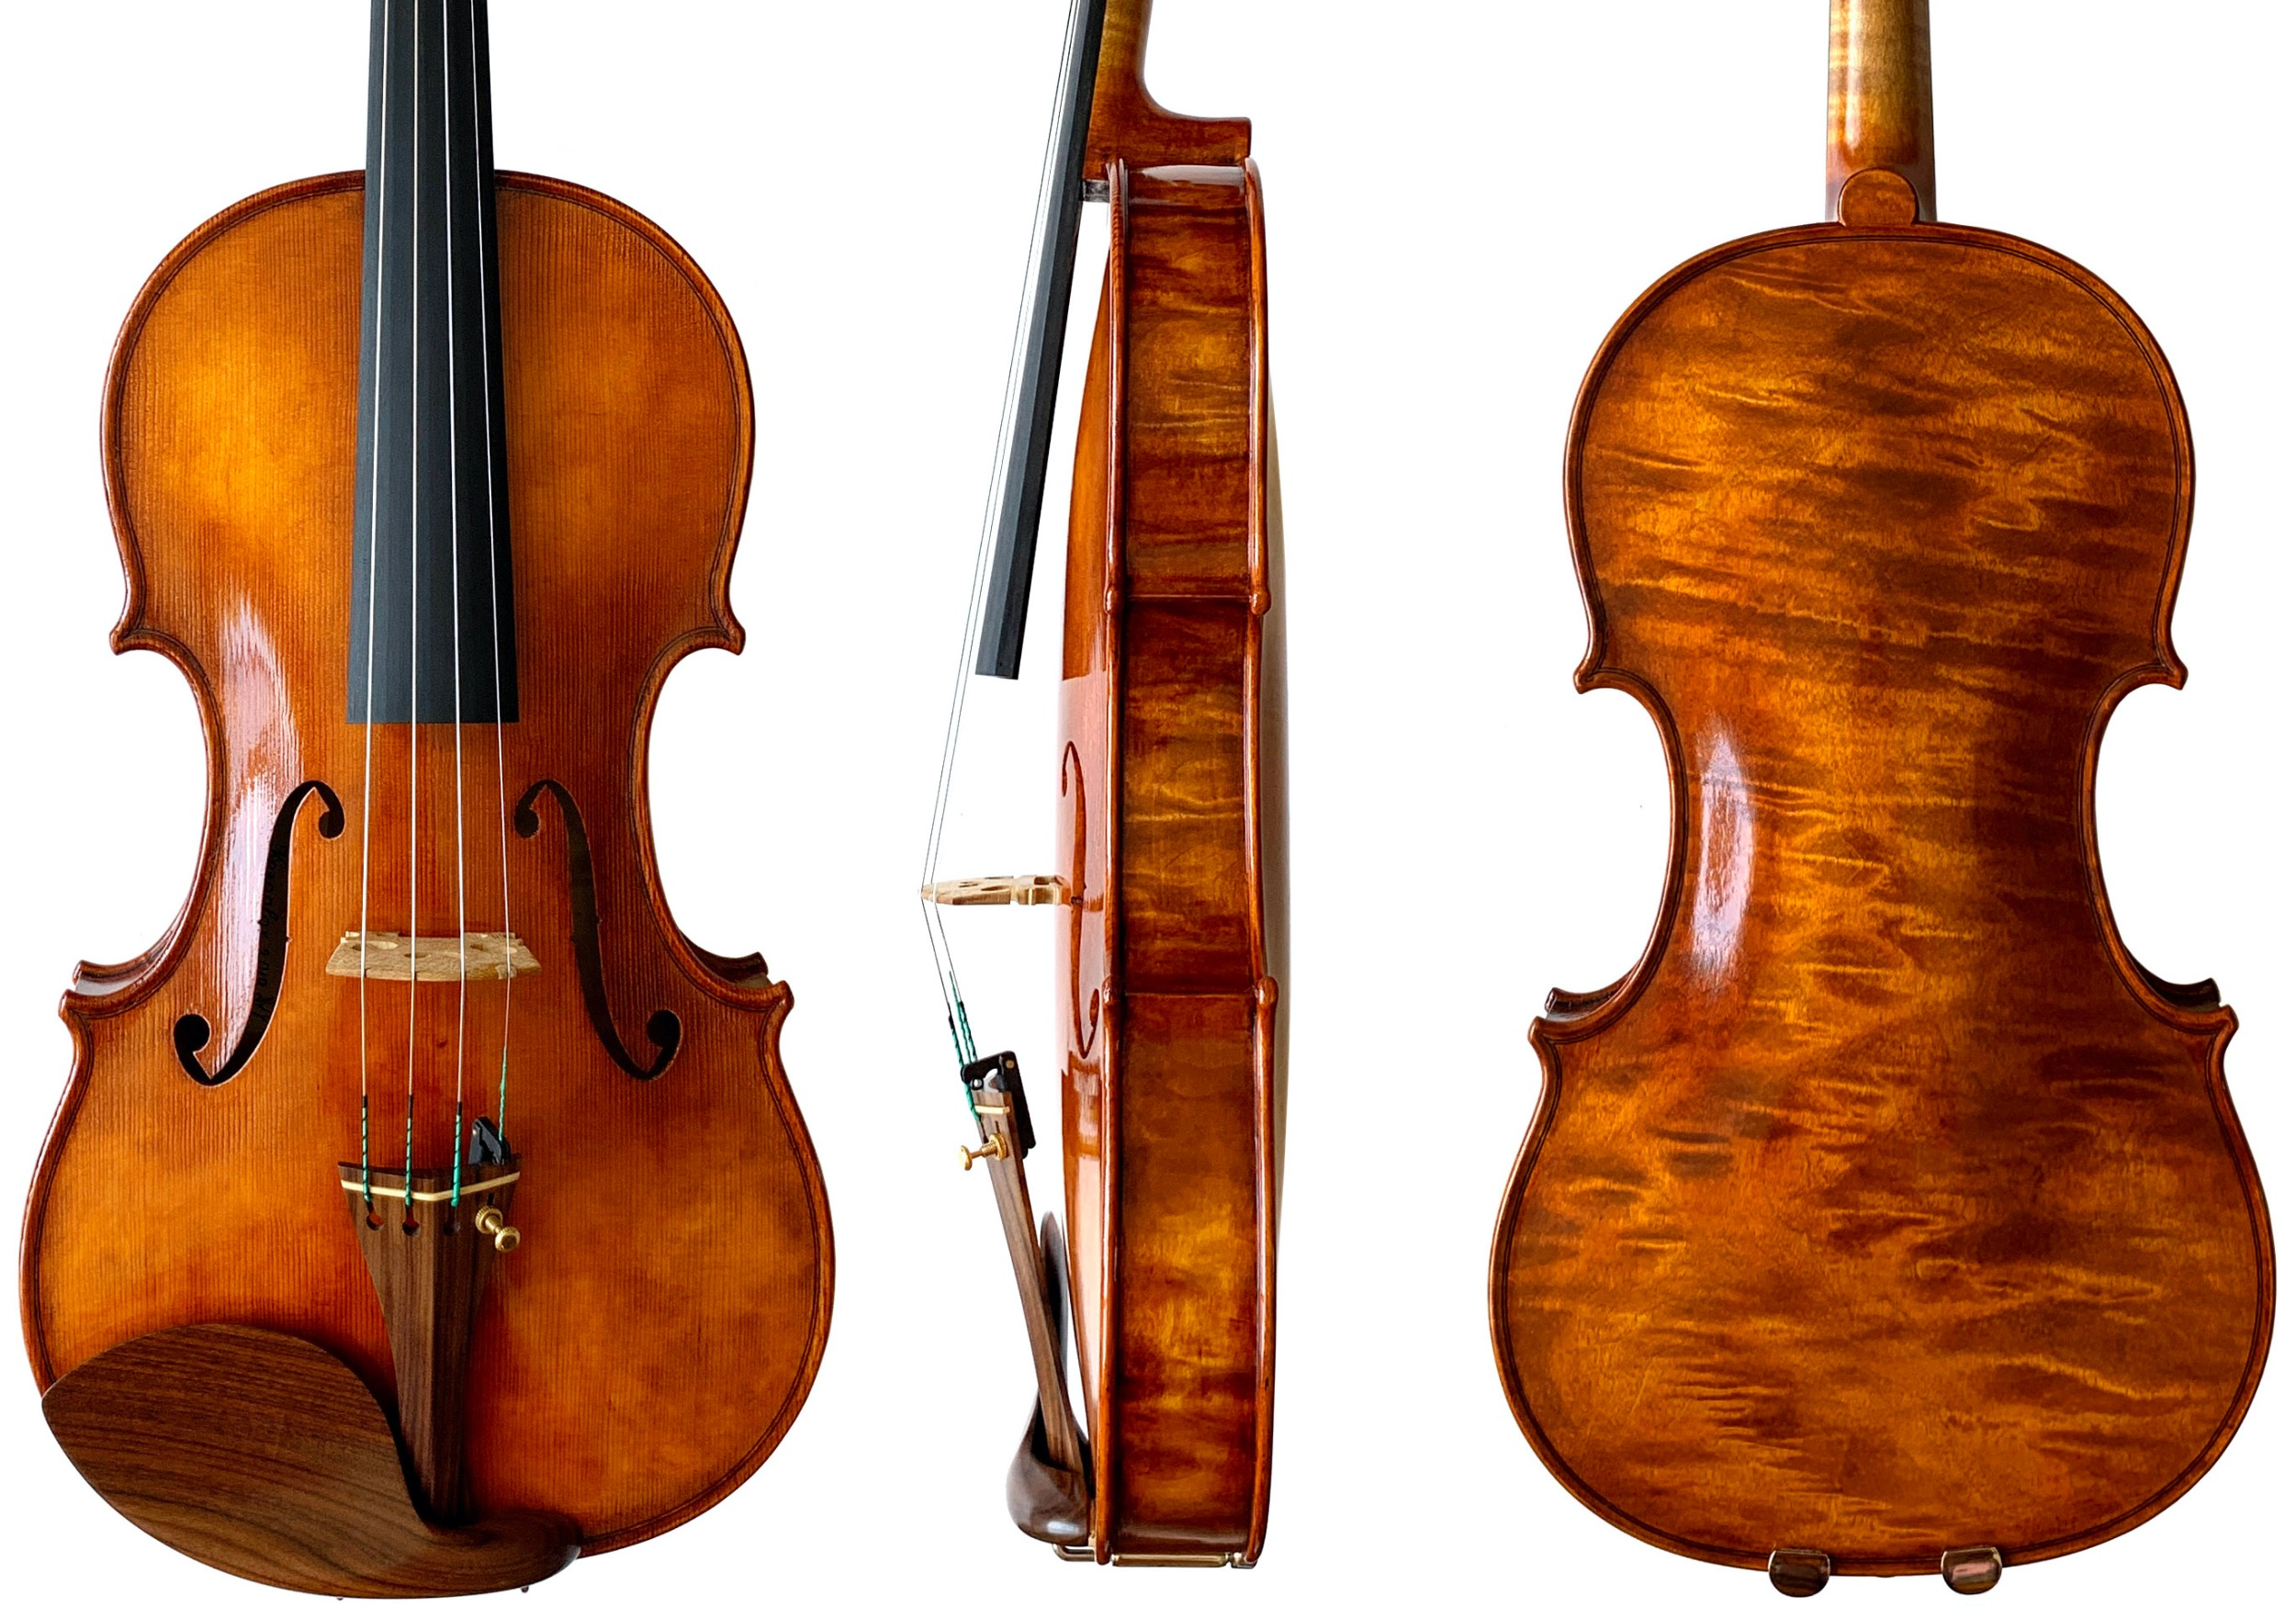 Moneff violin front, side and back